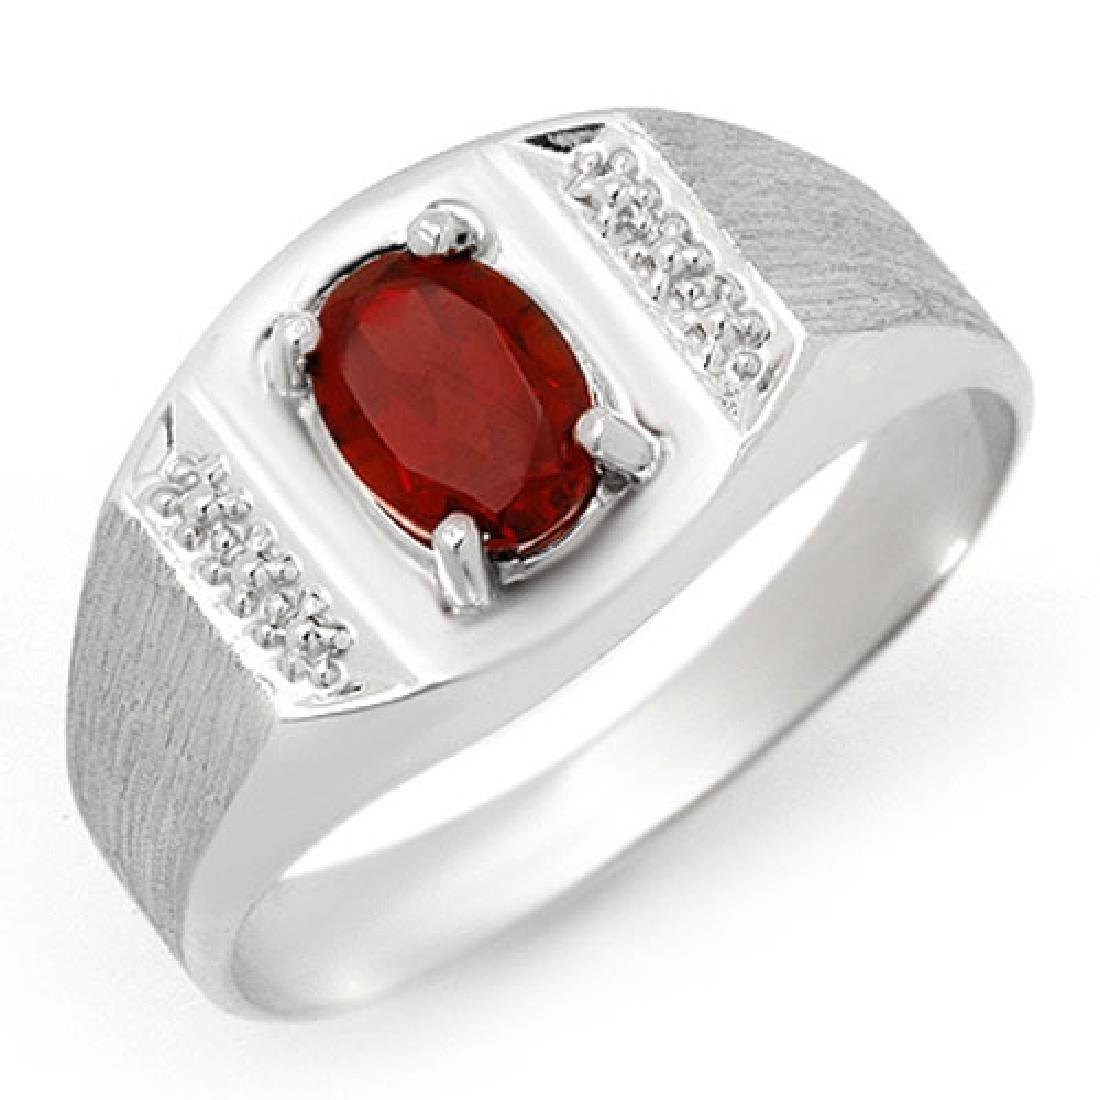 2.0 CTW Garnet Men's Ring 10K White Gold